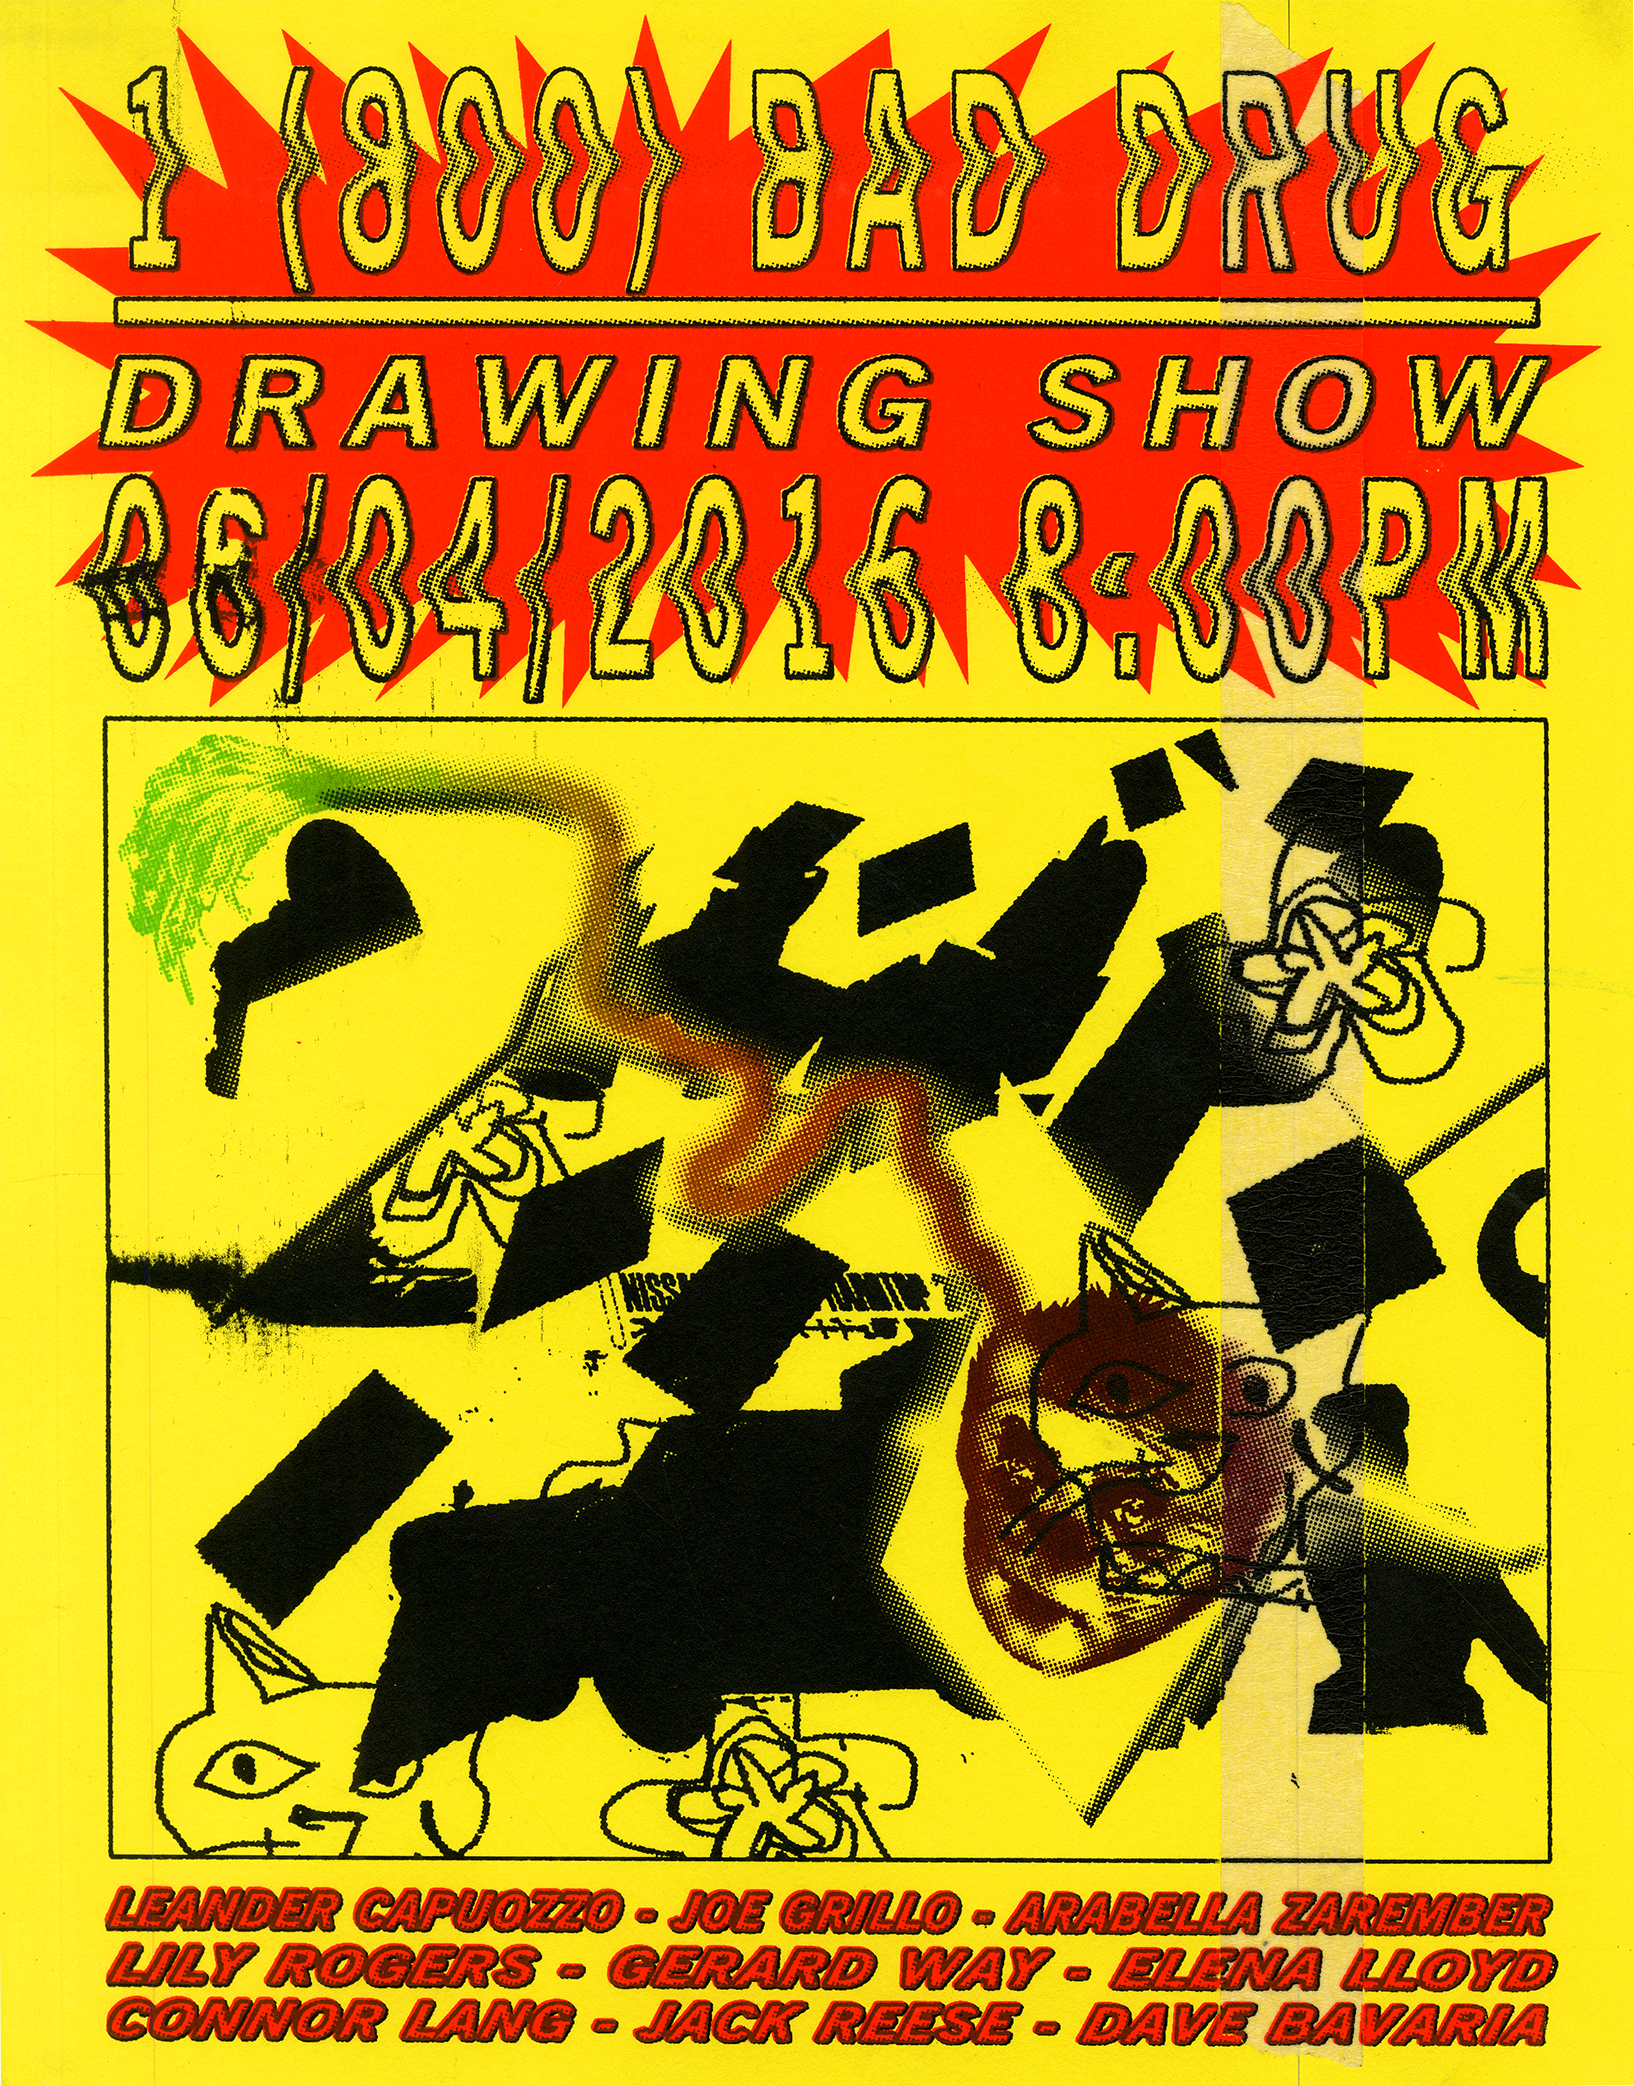 1 (800) BAD-DRUG: DRAWING SHOW